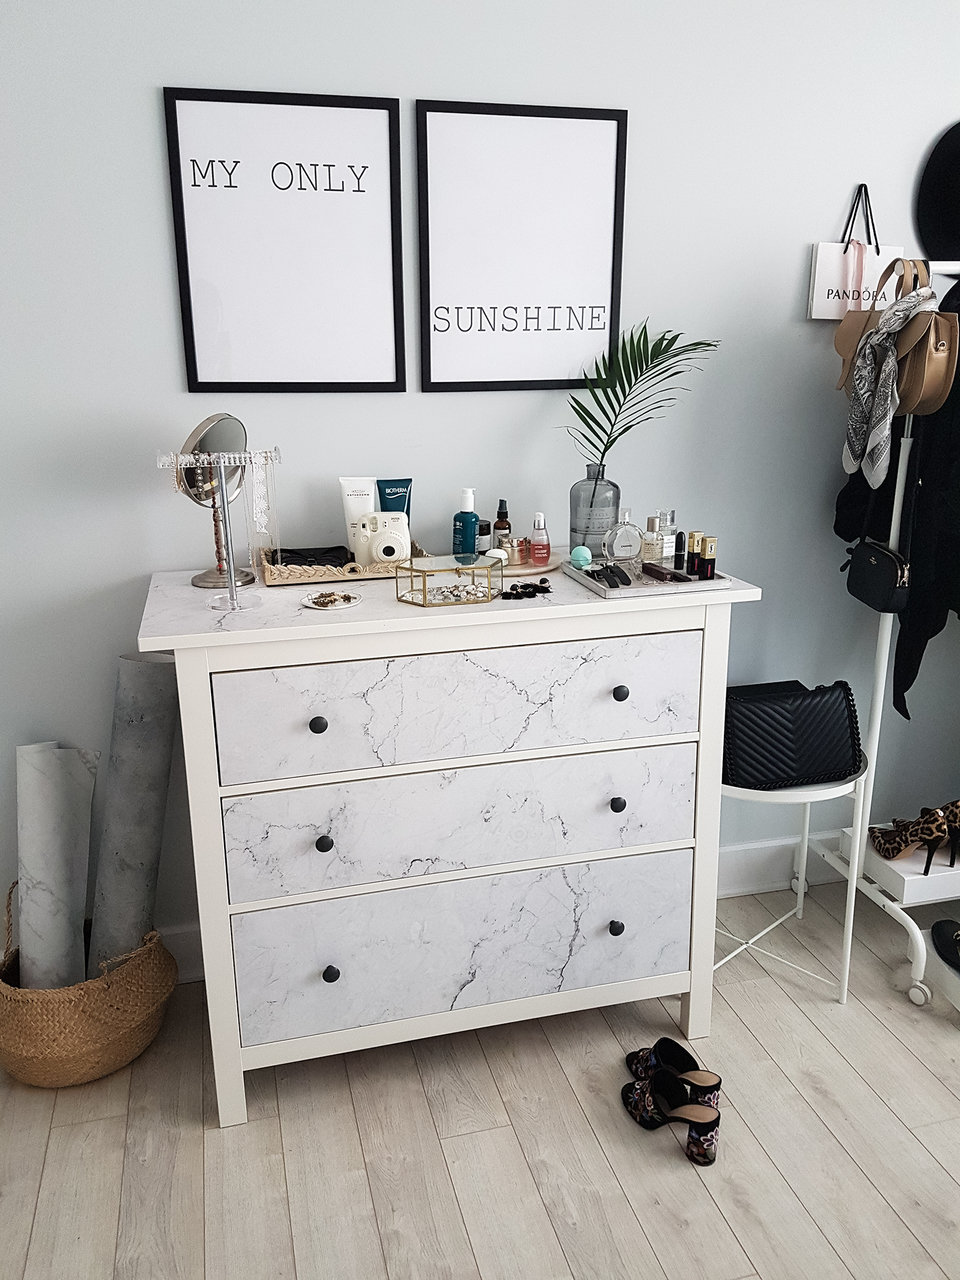 DIY Ikea hemnes dresser makeover with self-adhesive marble wallpaper from Pixers. Styled by @petiteandbold. Source: https://www.instagram.com/p/BUSbEWQDX42/